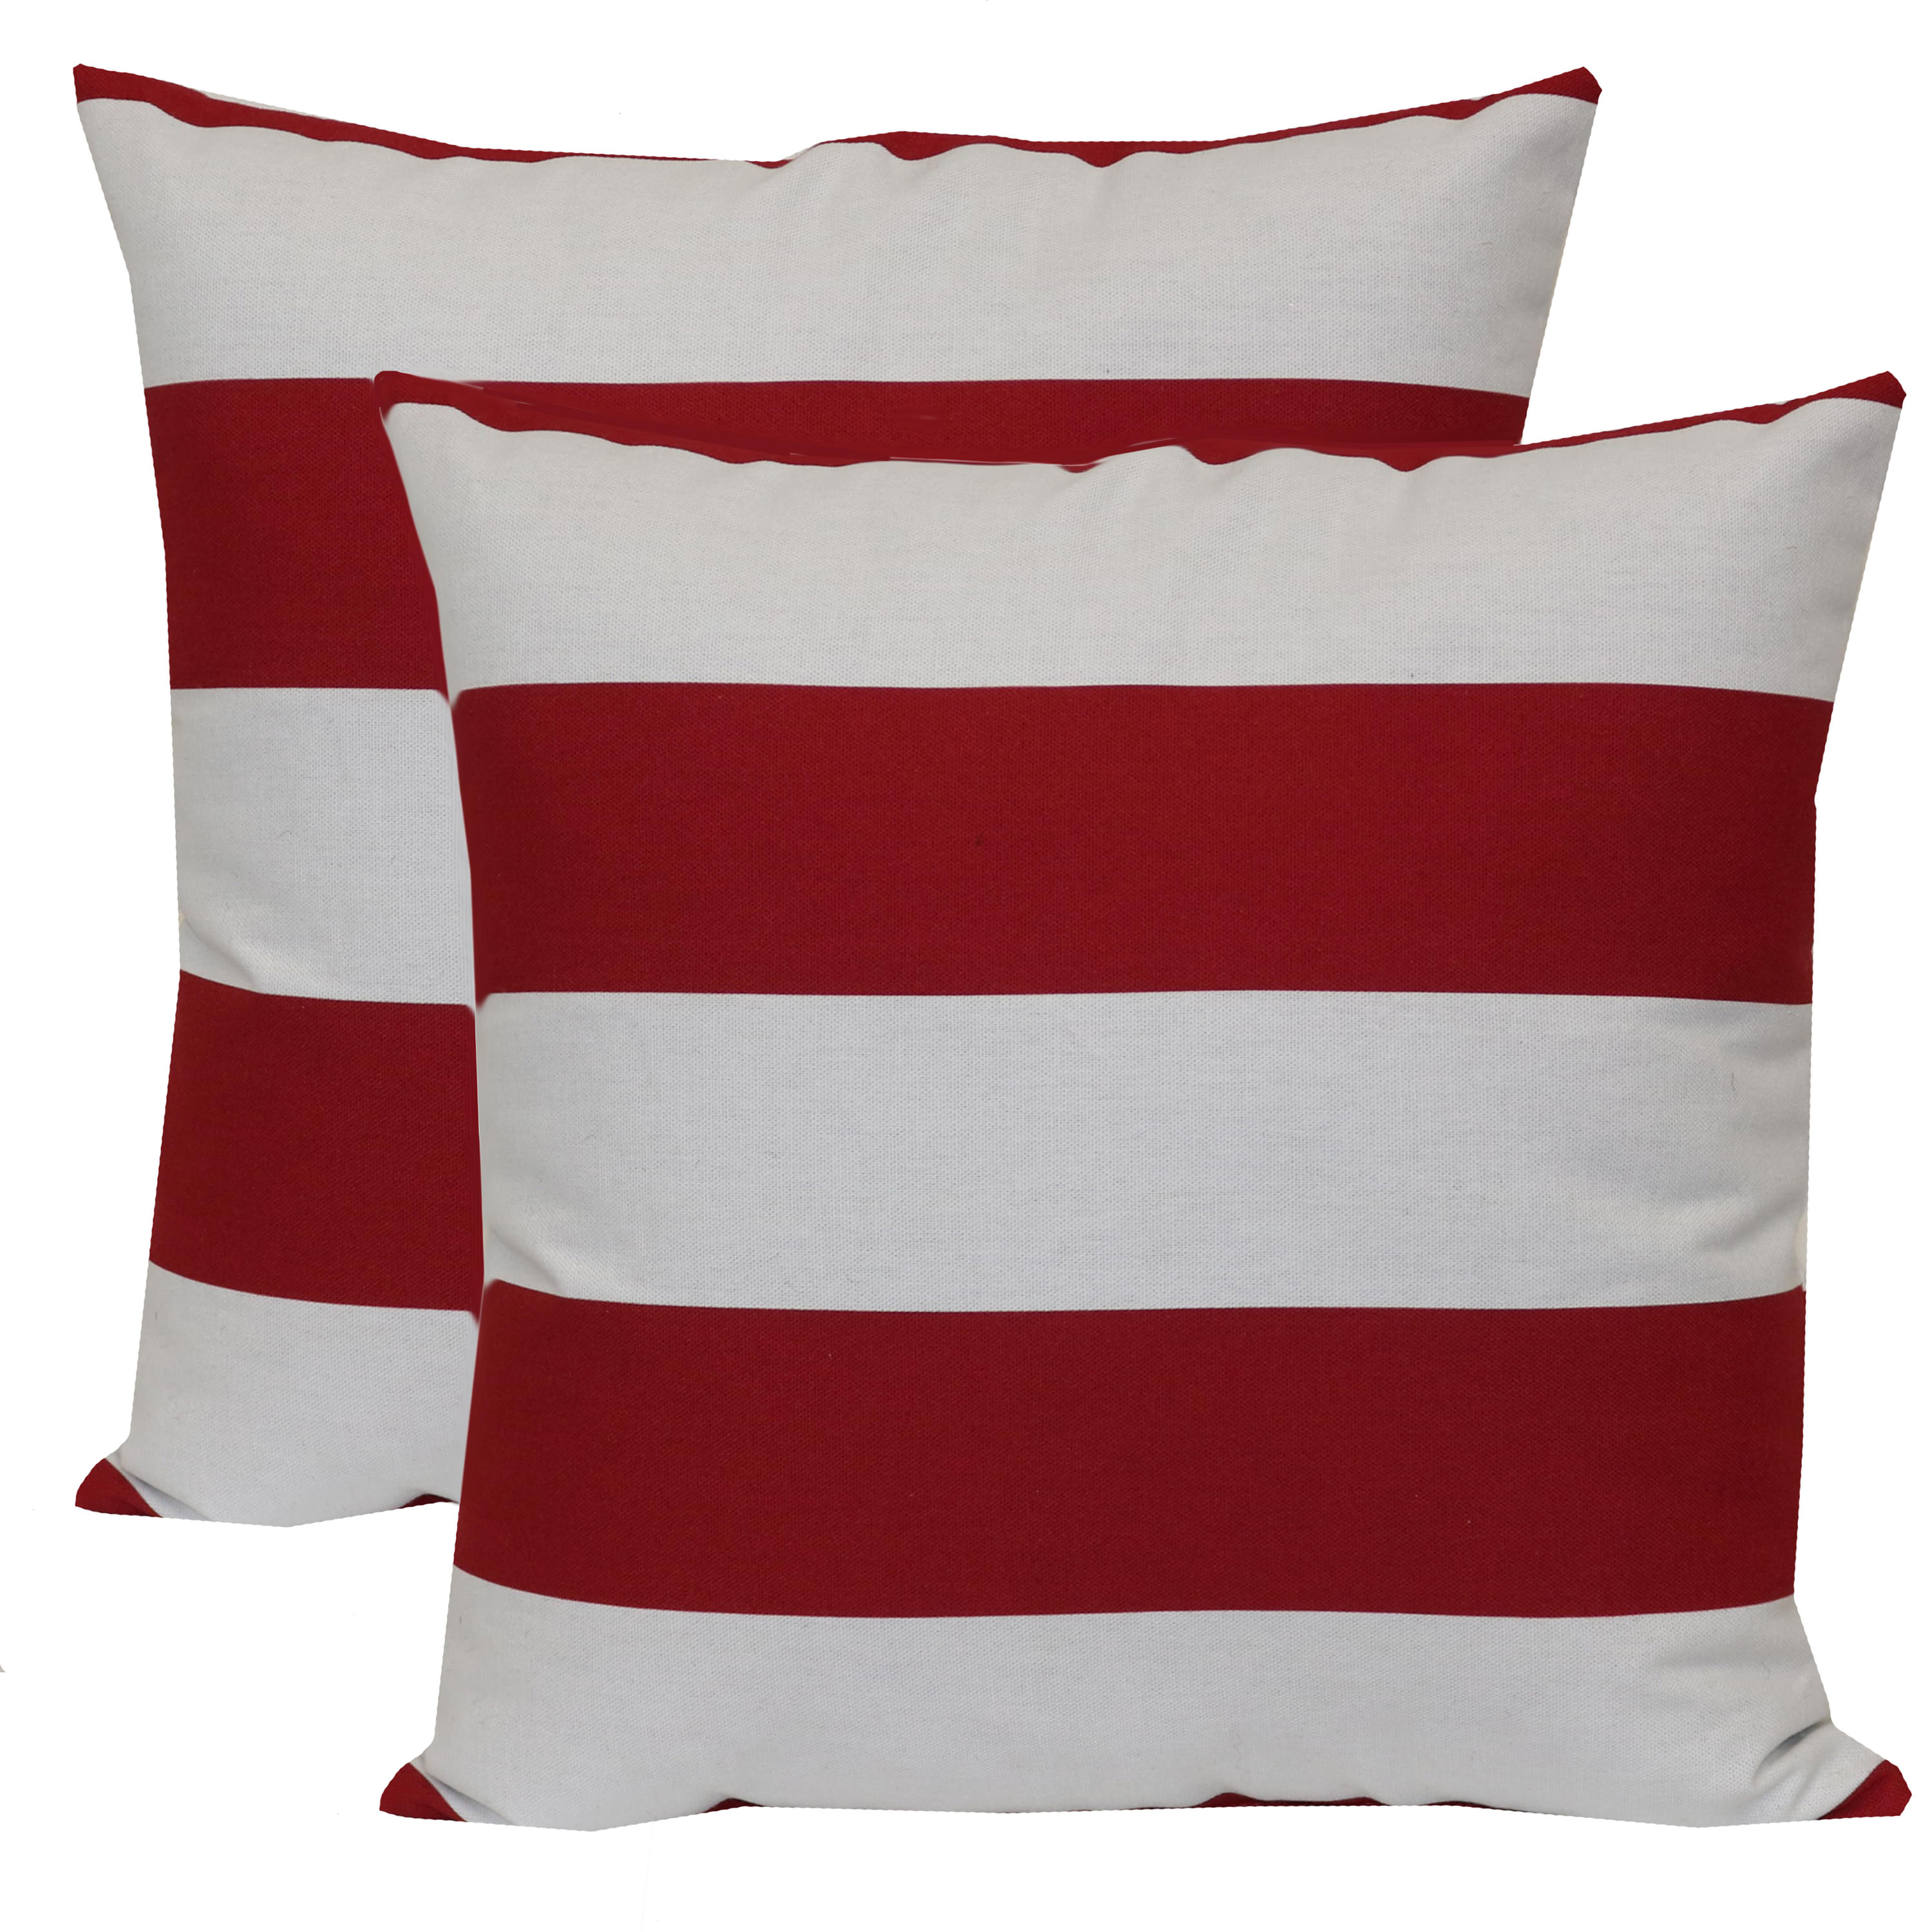 Mainstays Balboa Stripe Outdoor Toss Pillow - Set of 2